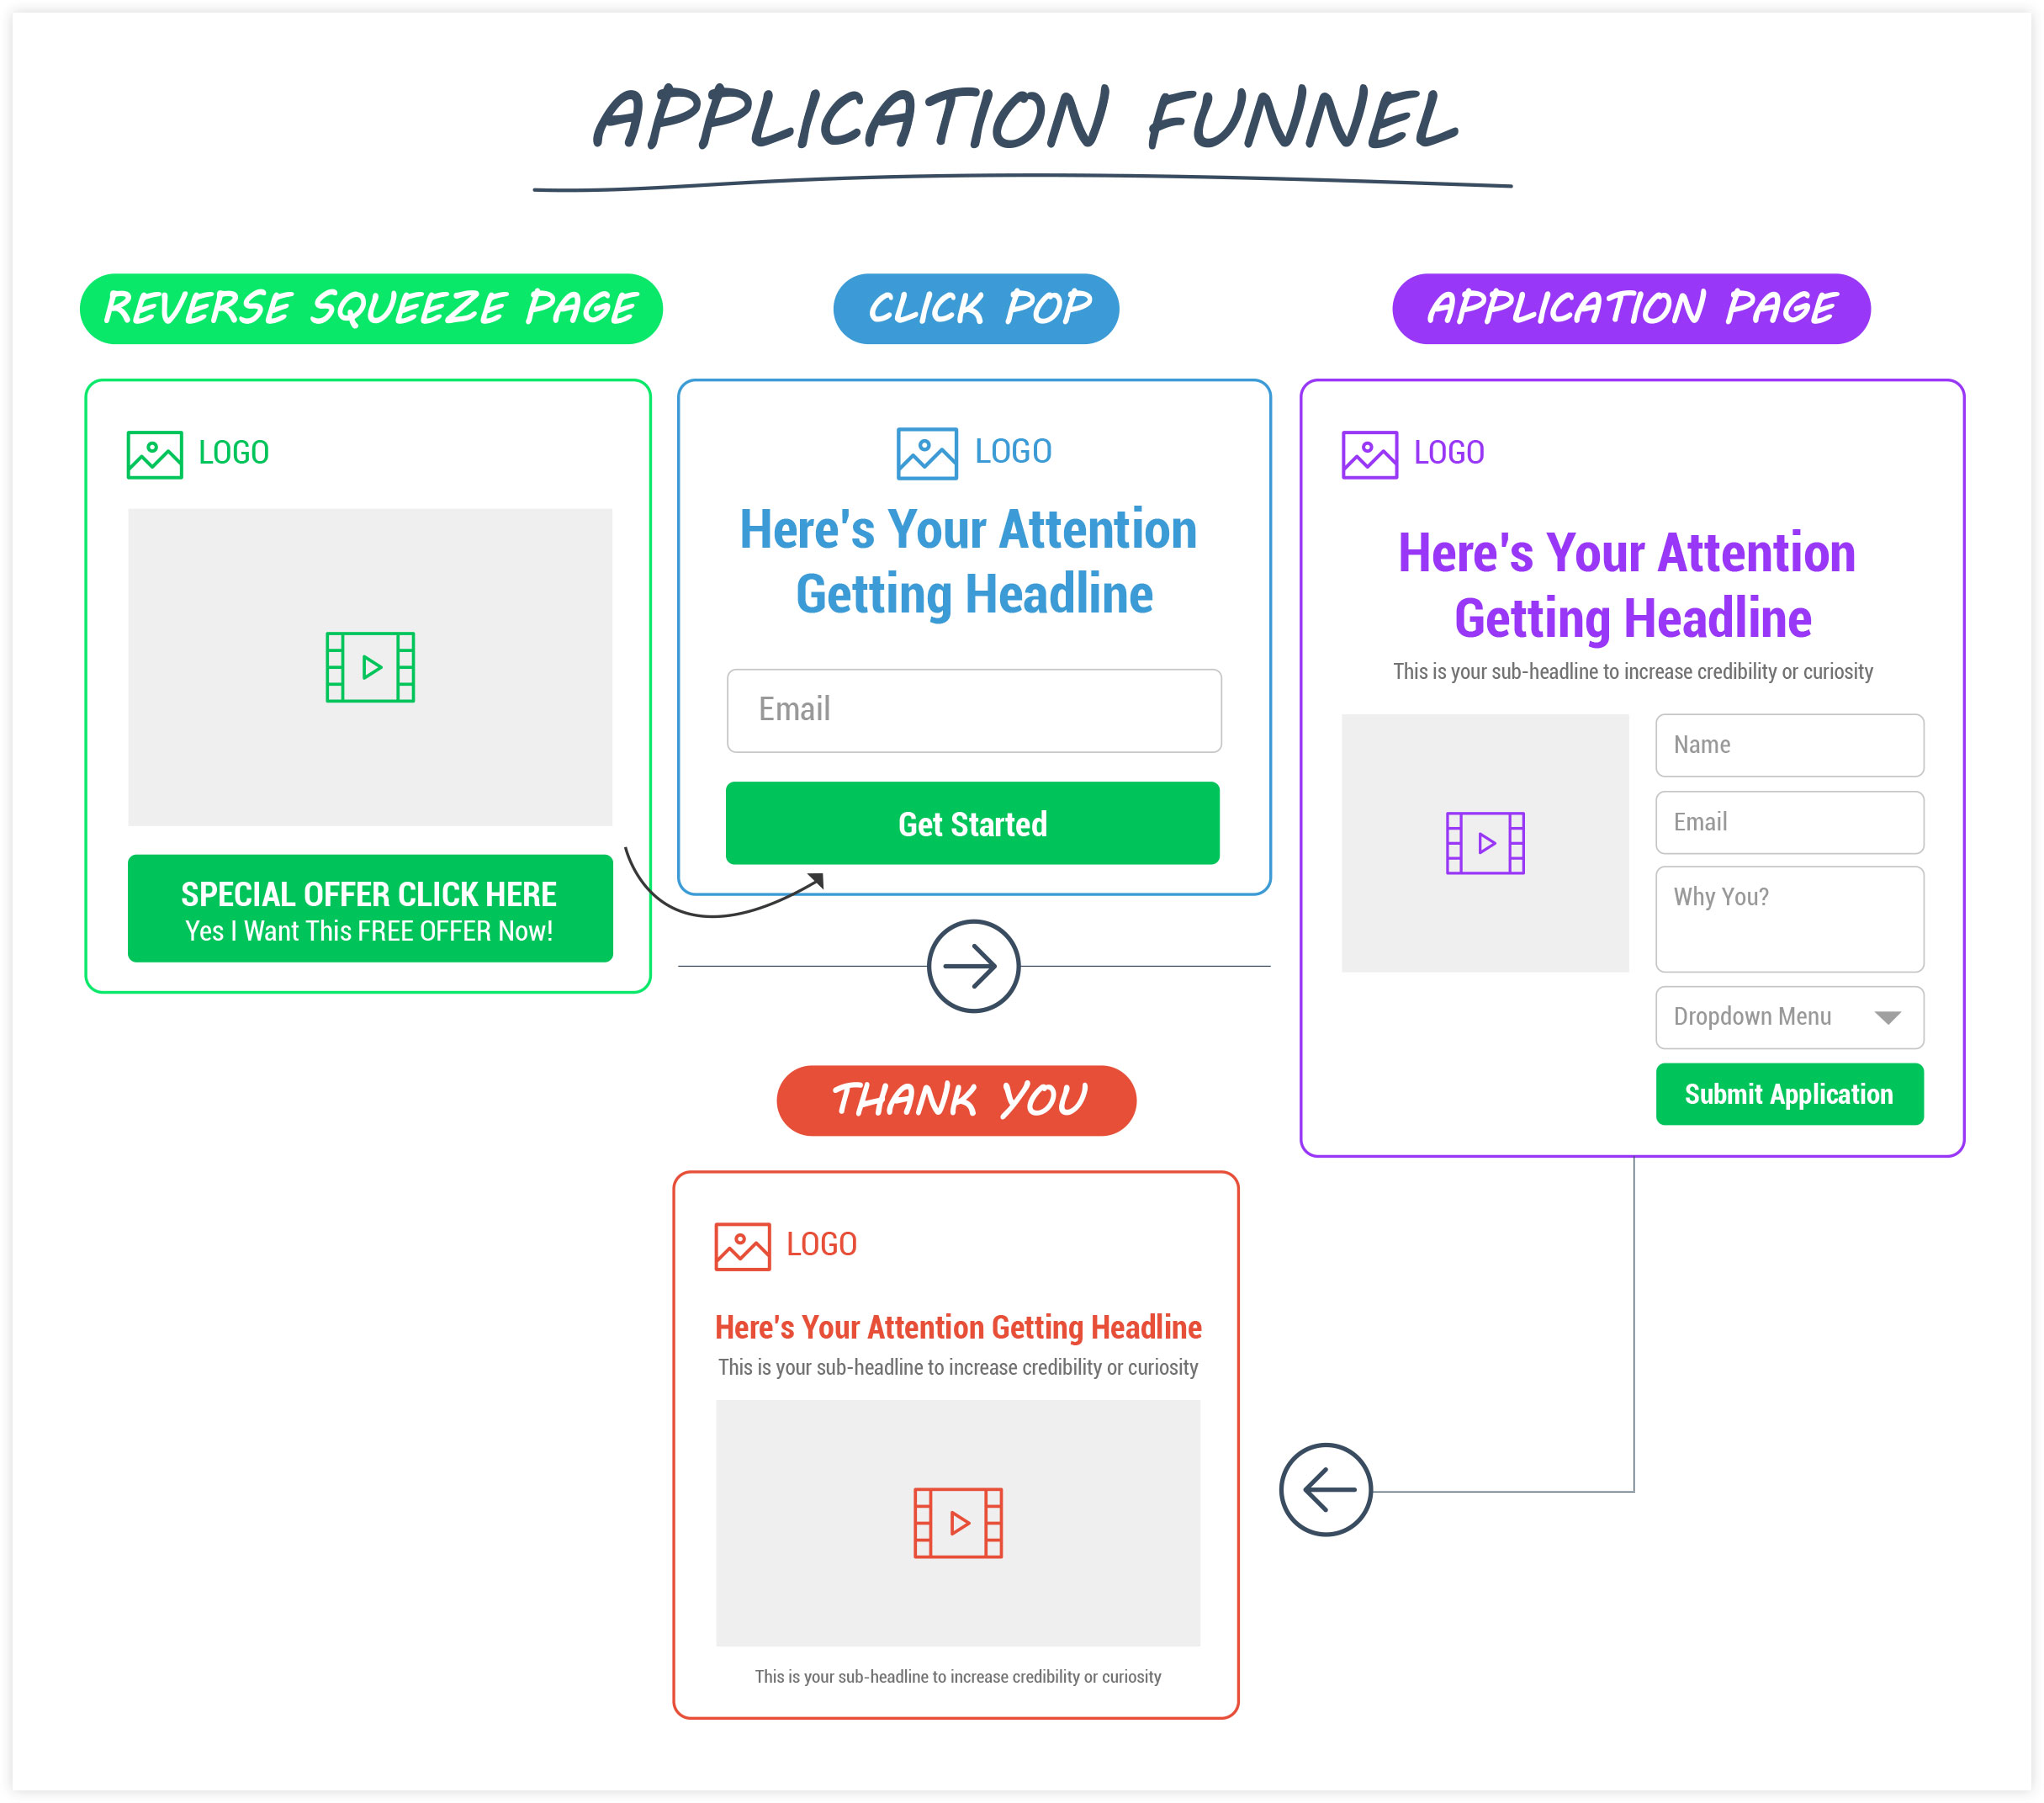 ClickFunnels Application Funnel Flow Example